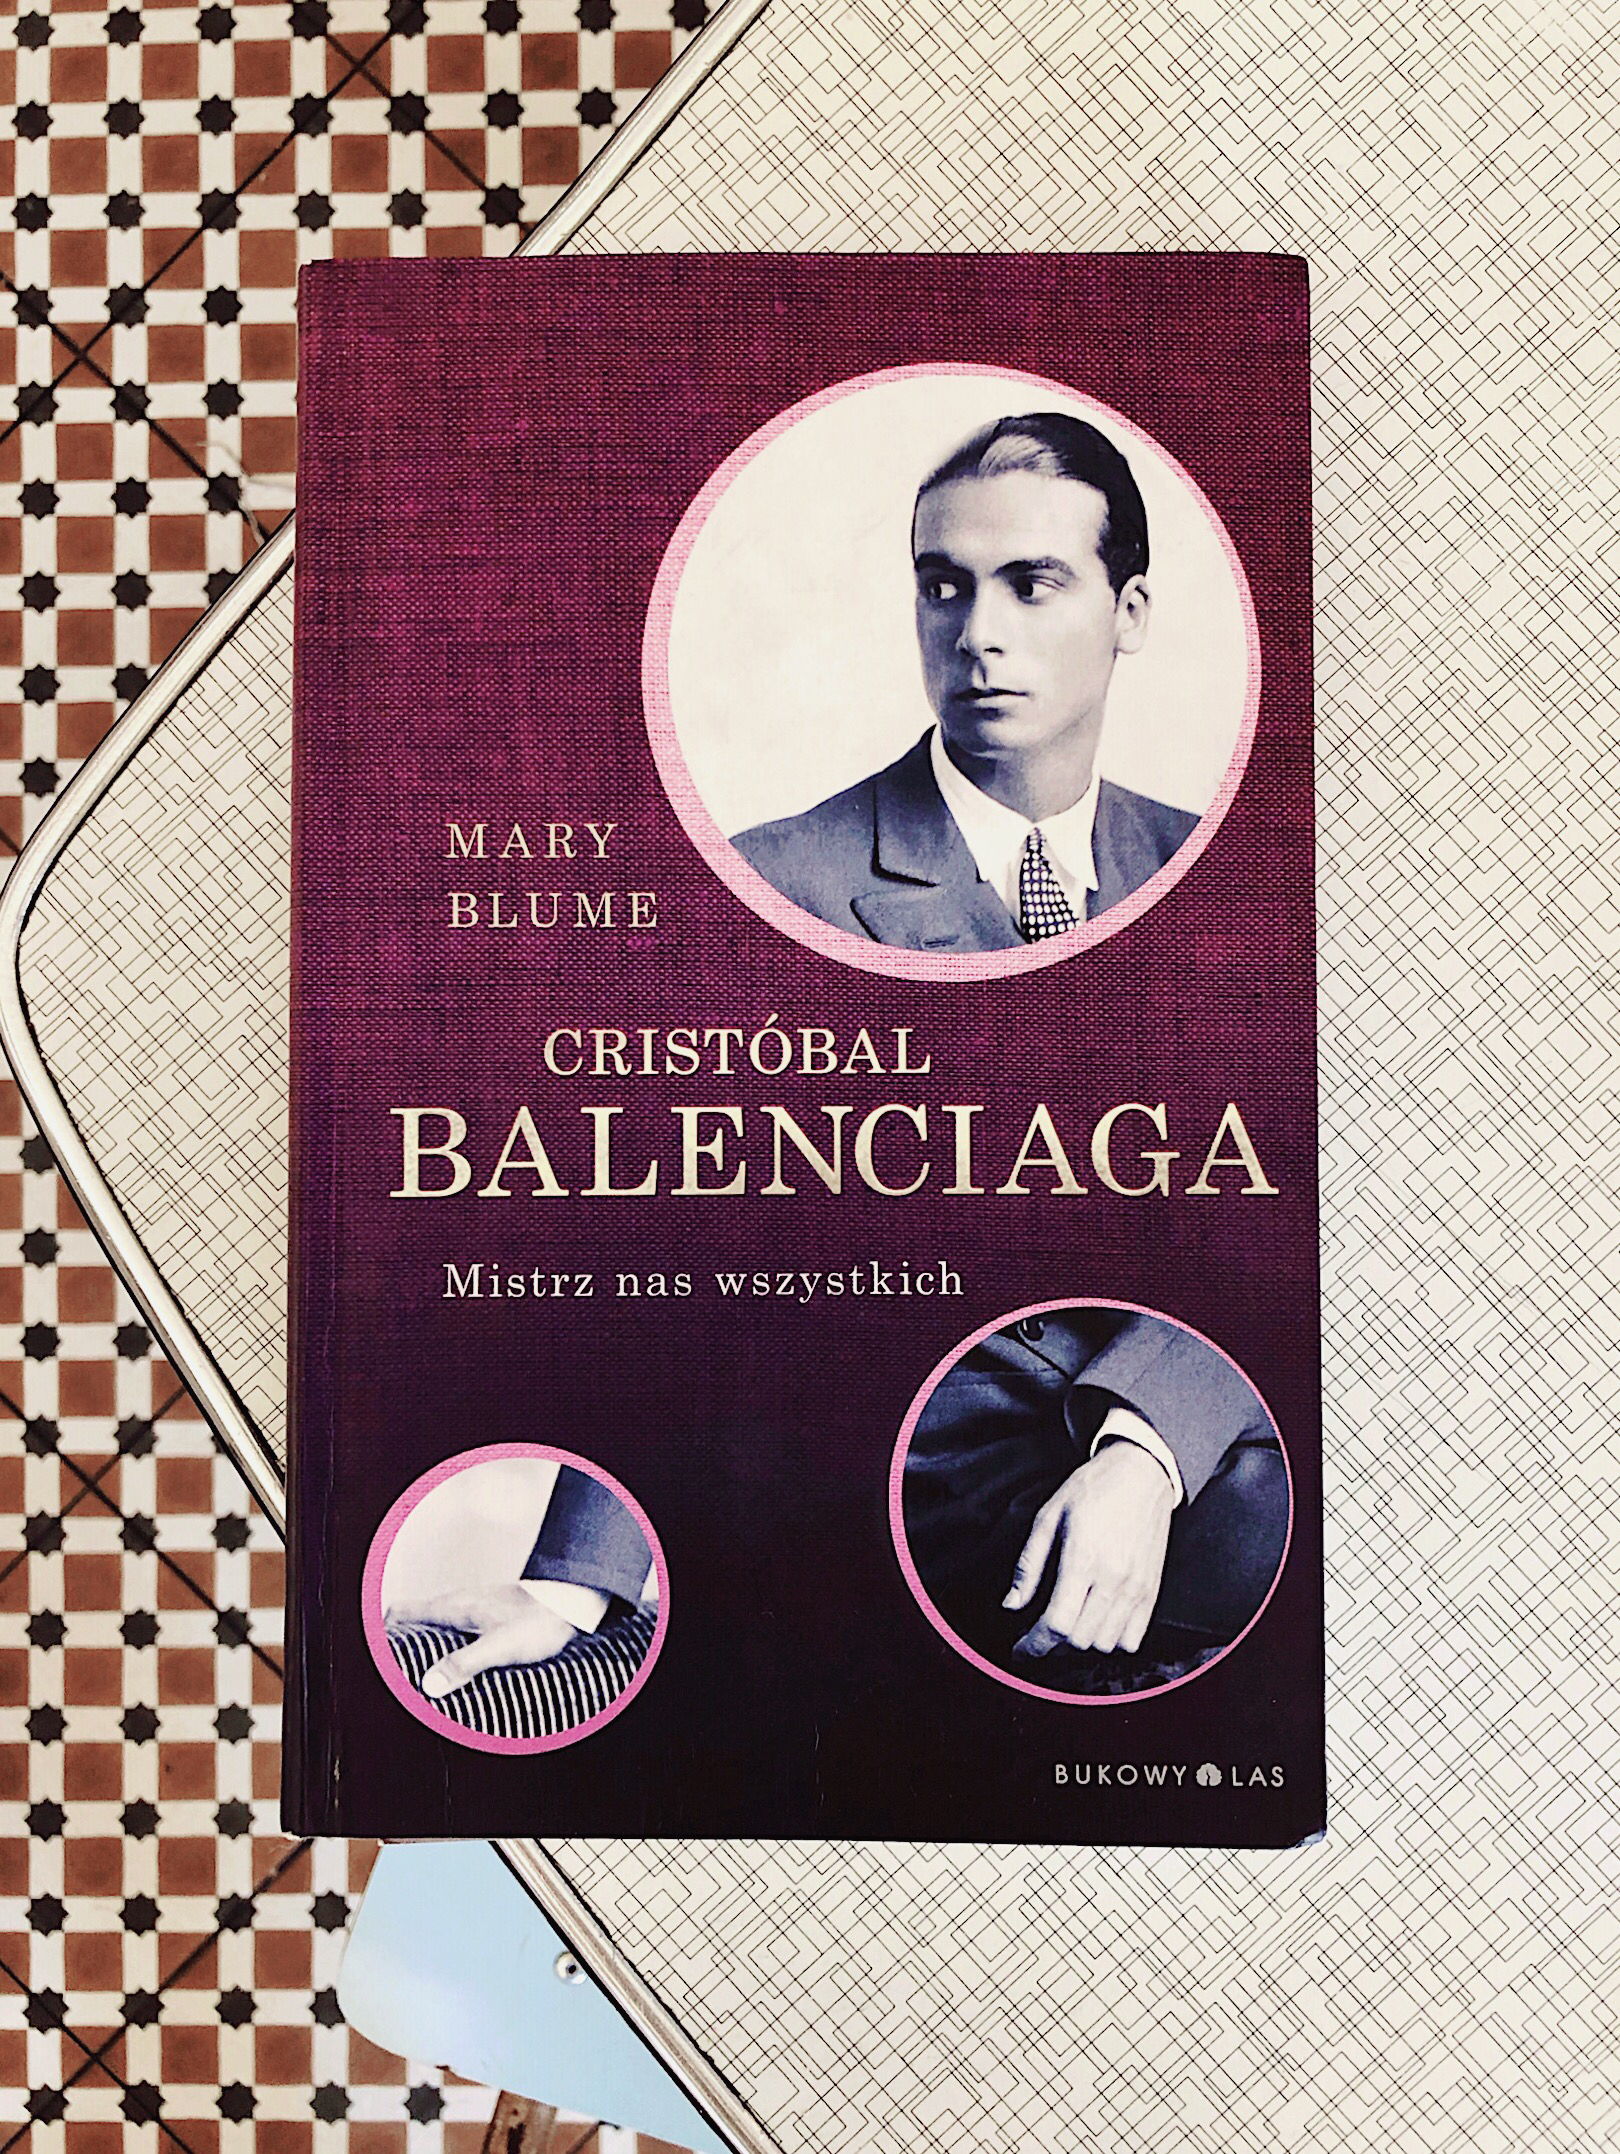 Cristobal Balenciaga book on the table